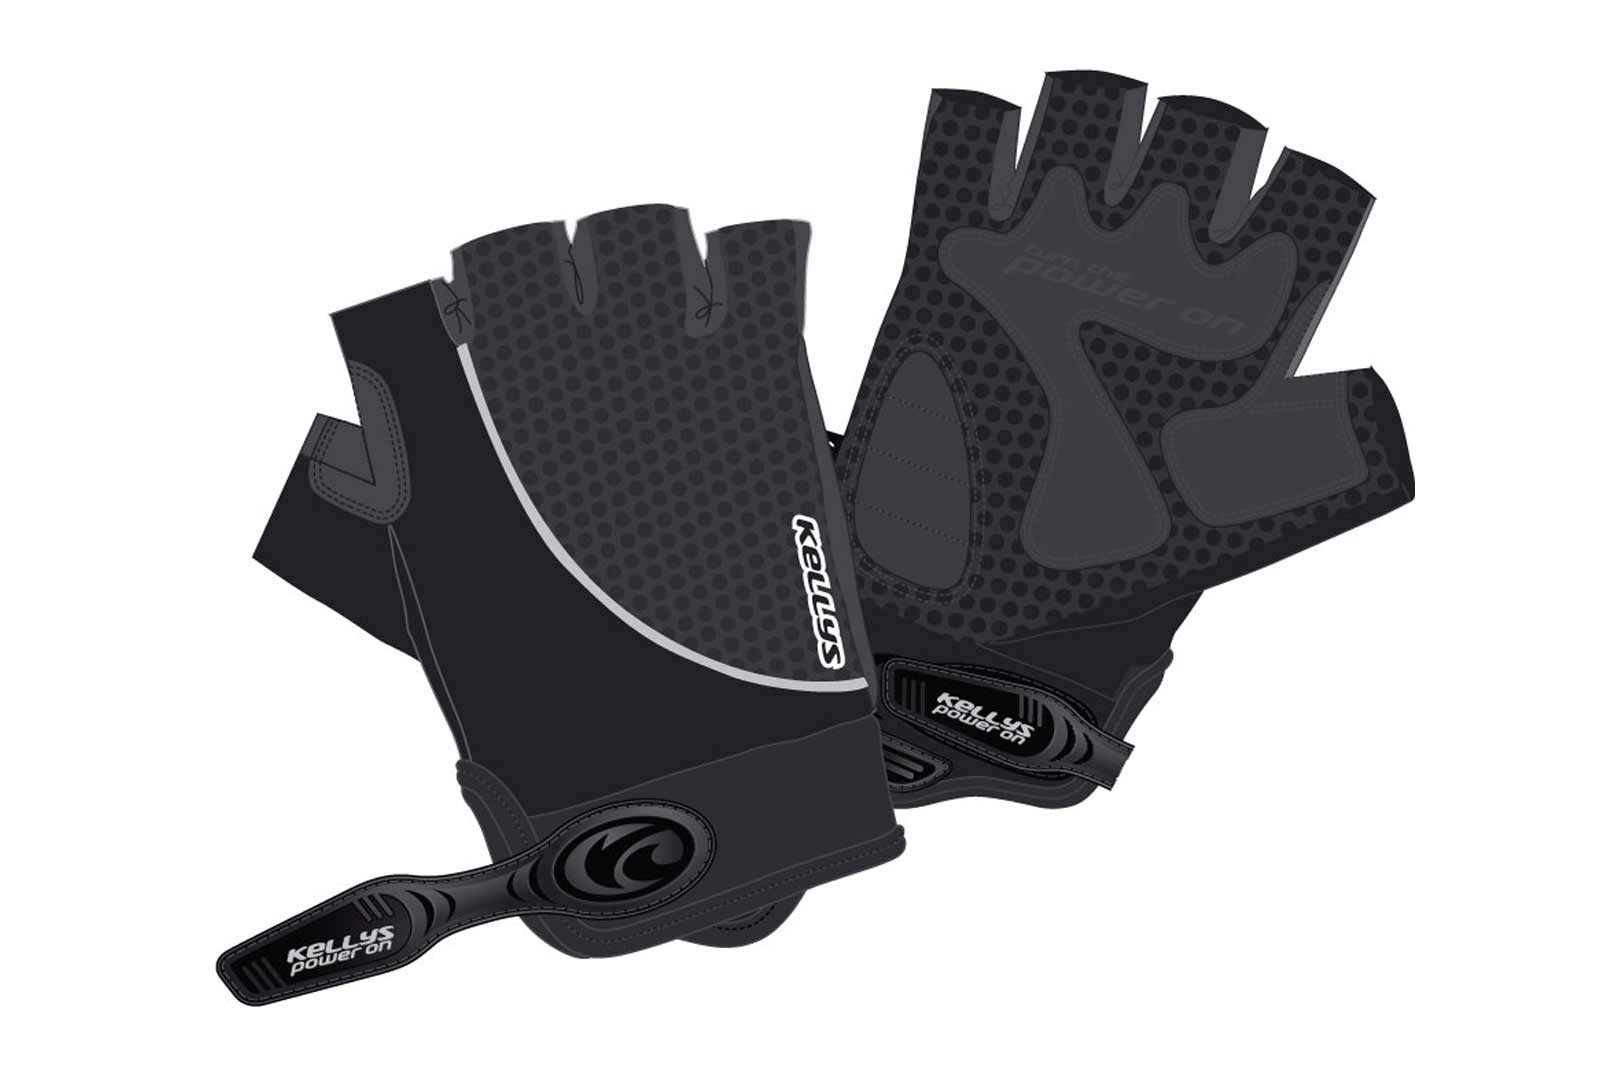 Handschuhe SEASON black XS - Mile-Multisport